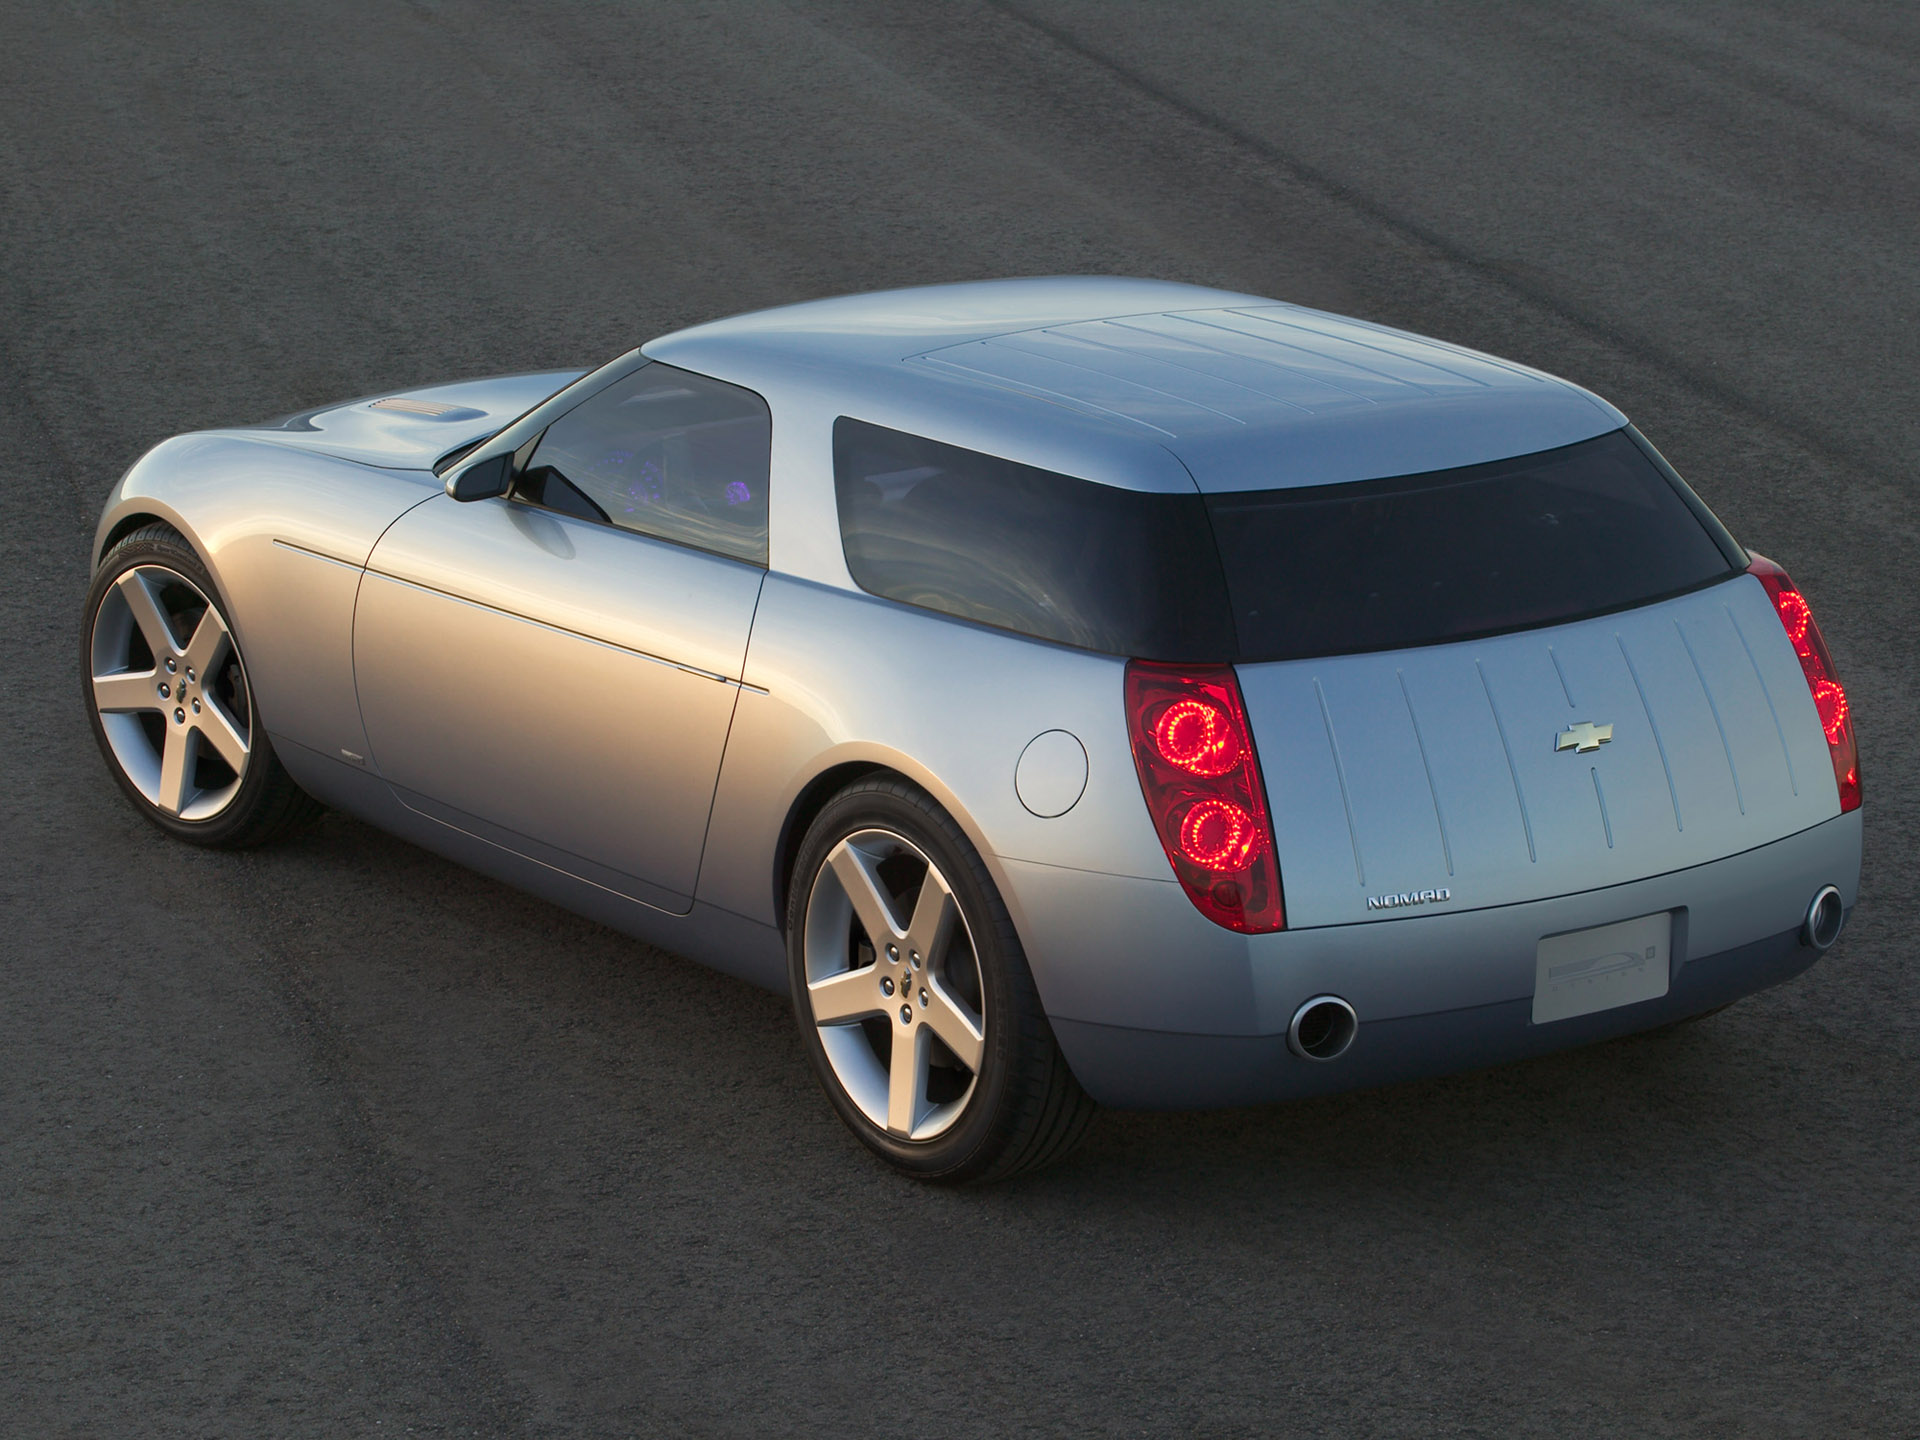 2004 Chevrolet Nomad Concept photo - 1